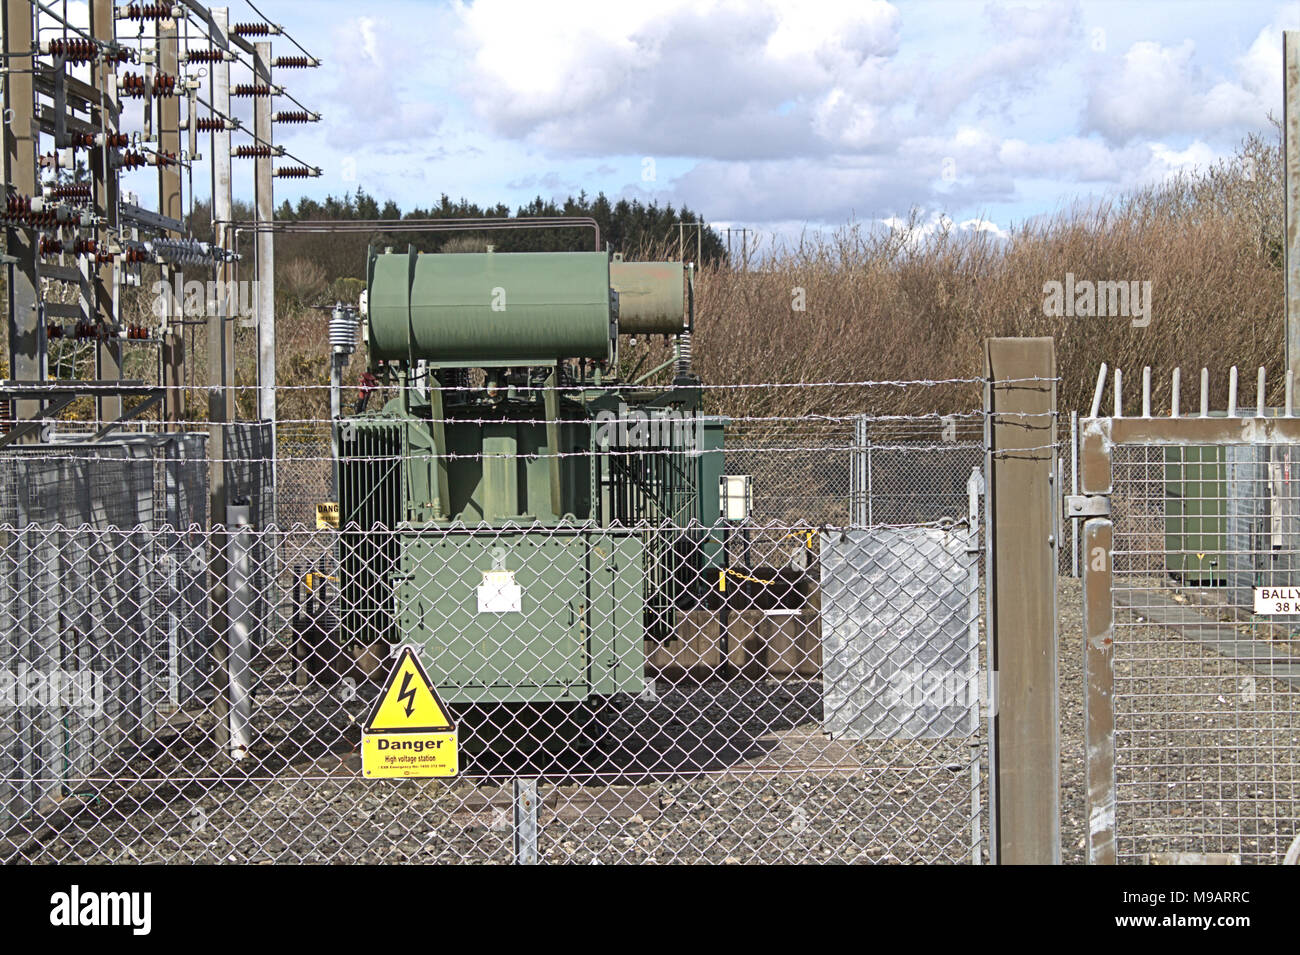 electricity substation compound part of the electrical distribution network in west cork, ireland Stock Photo